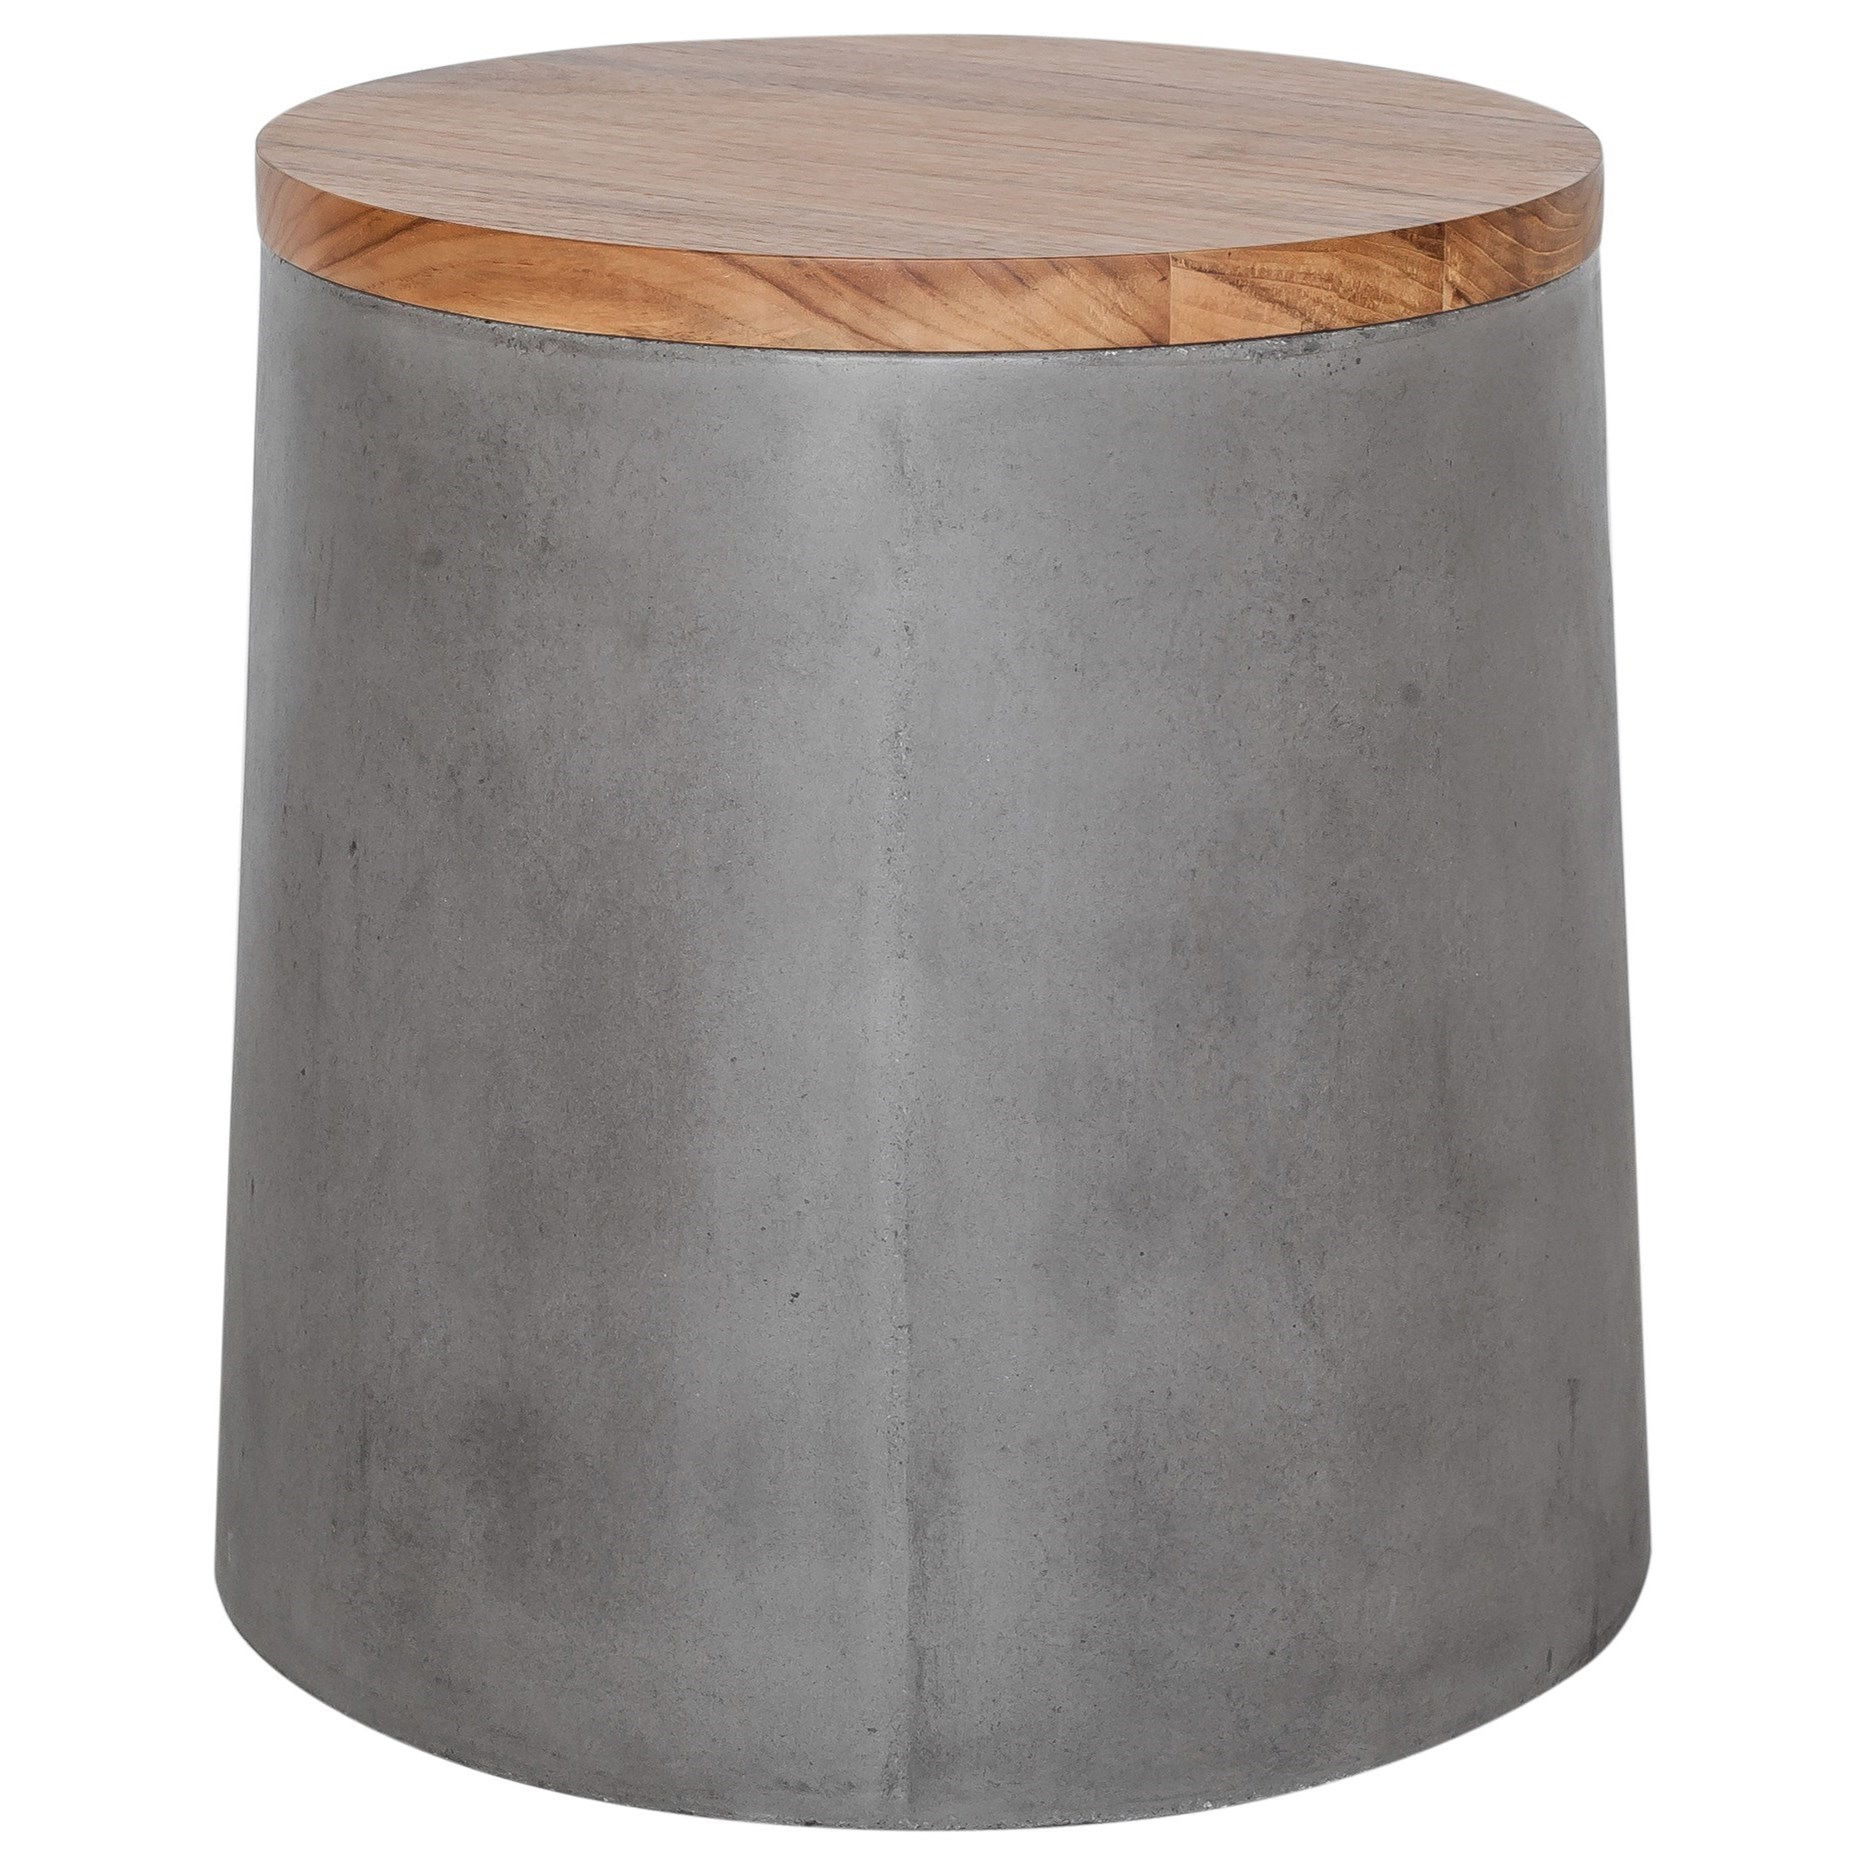 Concrete Outdoor Storage Stool